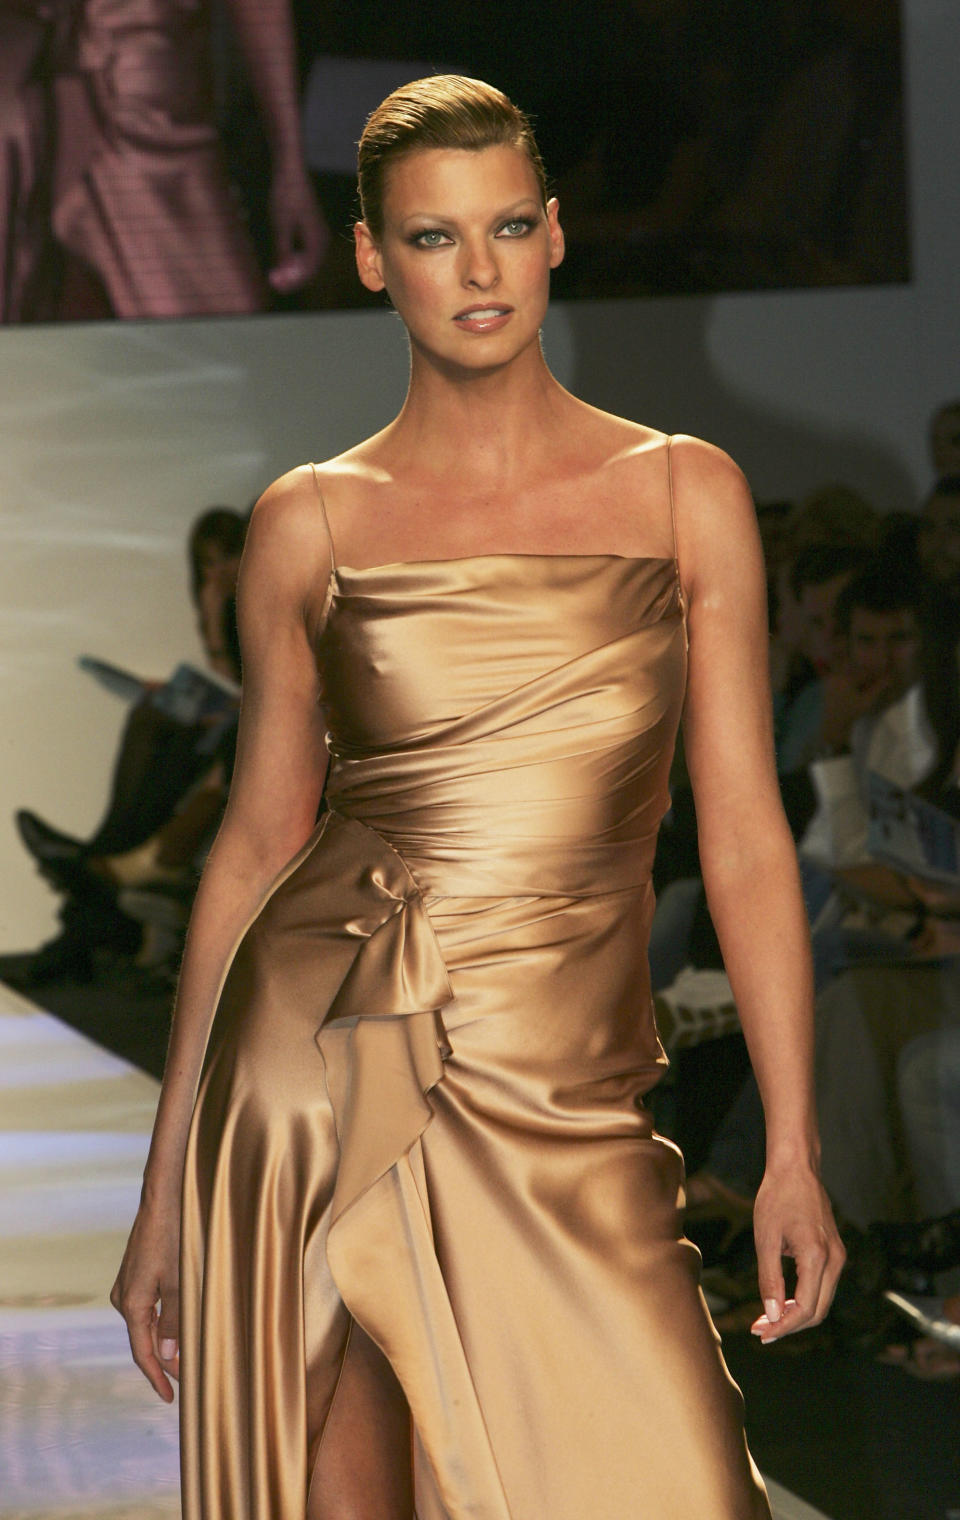 SYDNEY, AUSTRALIA - AUGUST 11:  Super model Linda Evangelista wears Collette Dinnigan at the David Jones Spring Summer Collections Launch at the Cook + Phillip Park August 11, 2004 in Sydney, Australia.  (Photo by Patrick Riviere/Getty Images)